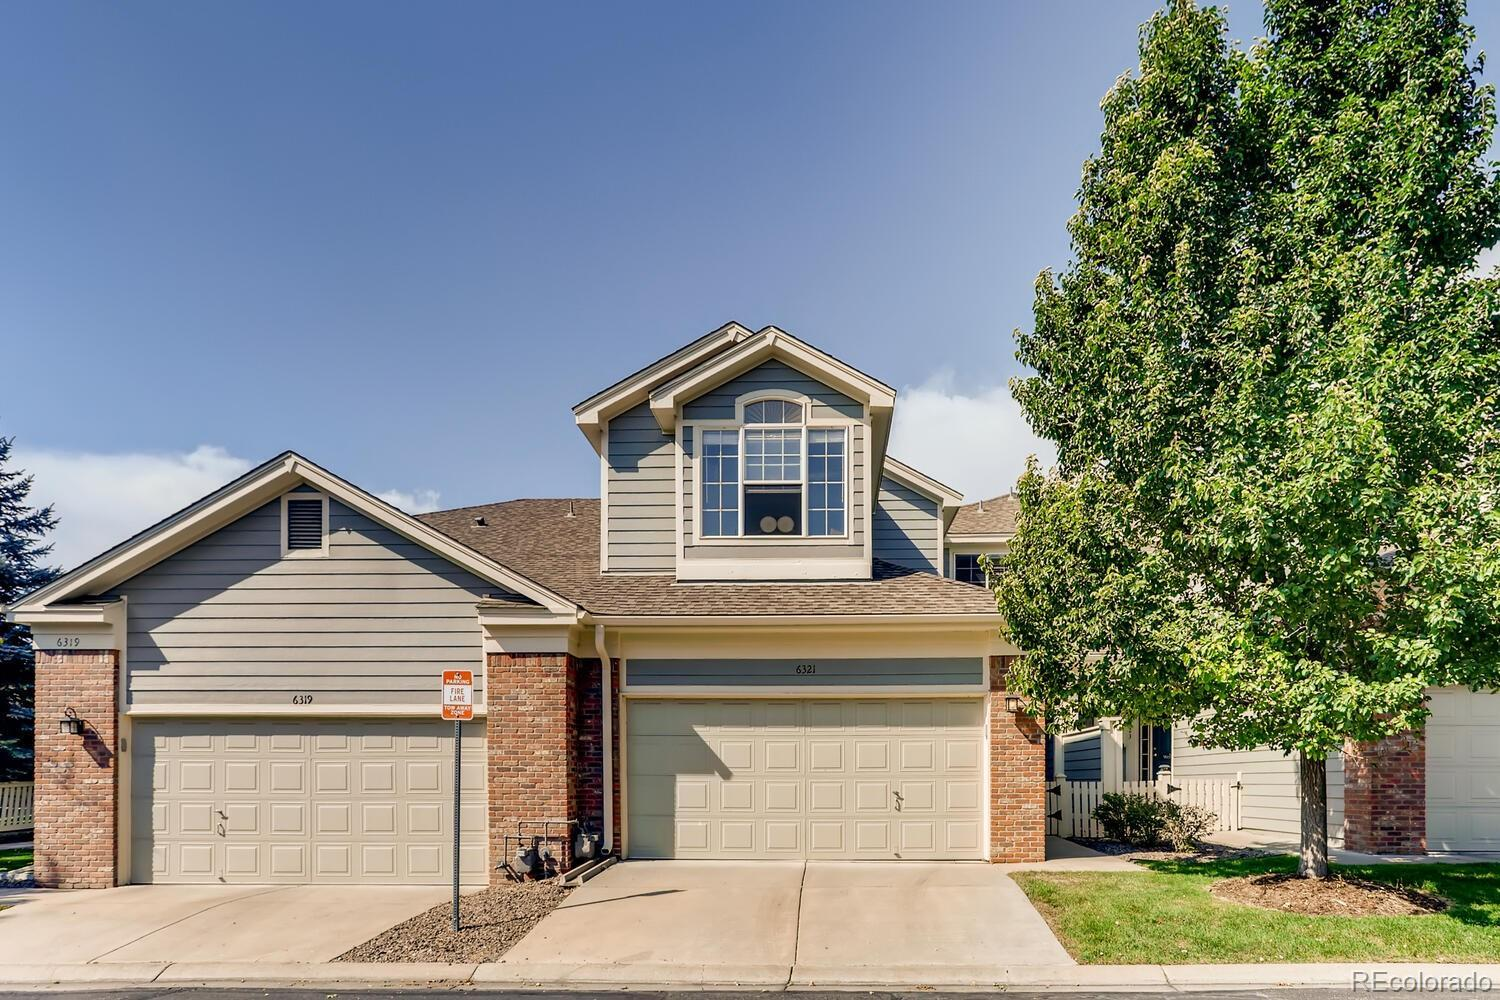 6321 Braun Lane, Arvada, CO 80004 - #: 7933396